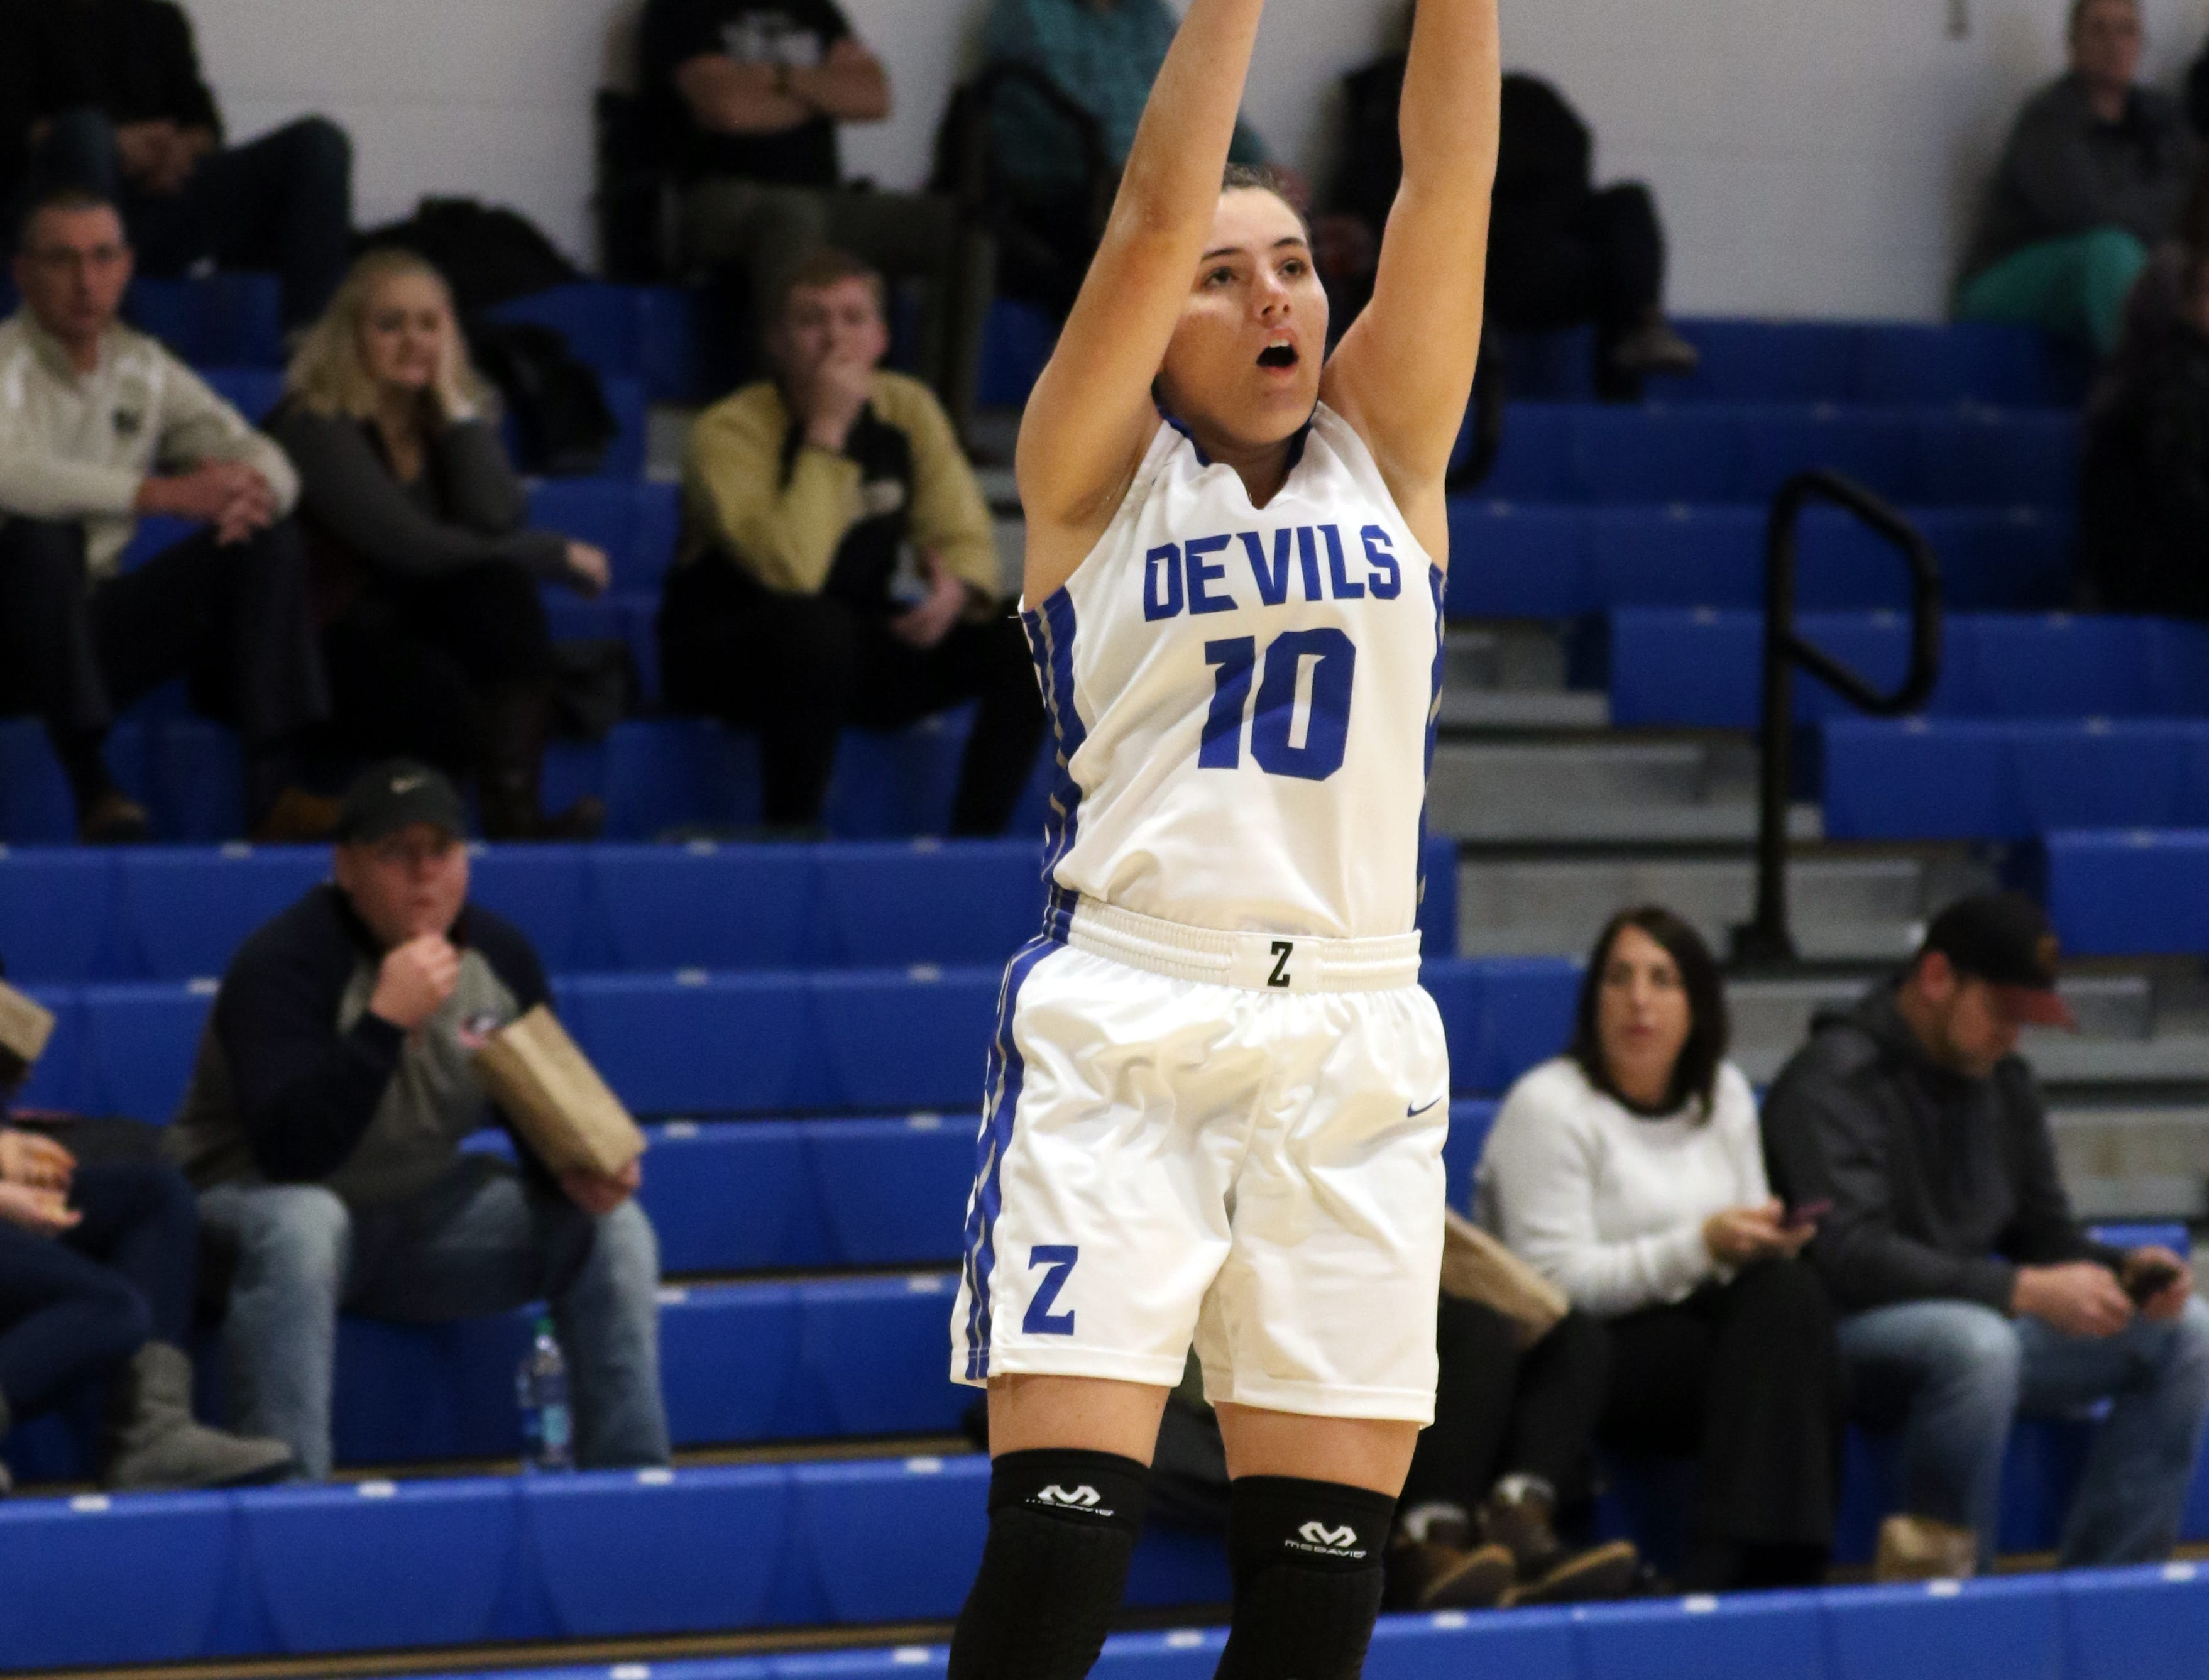 Zanesville's Aayla Mayle fires a shot against River View.